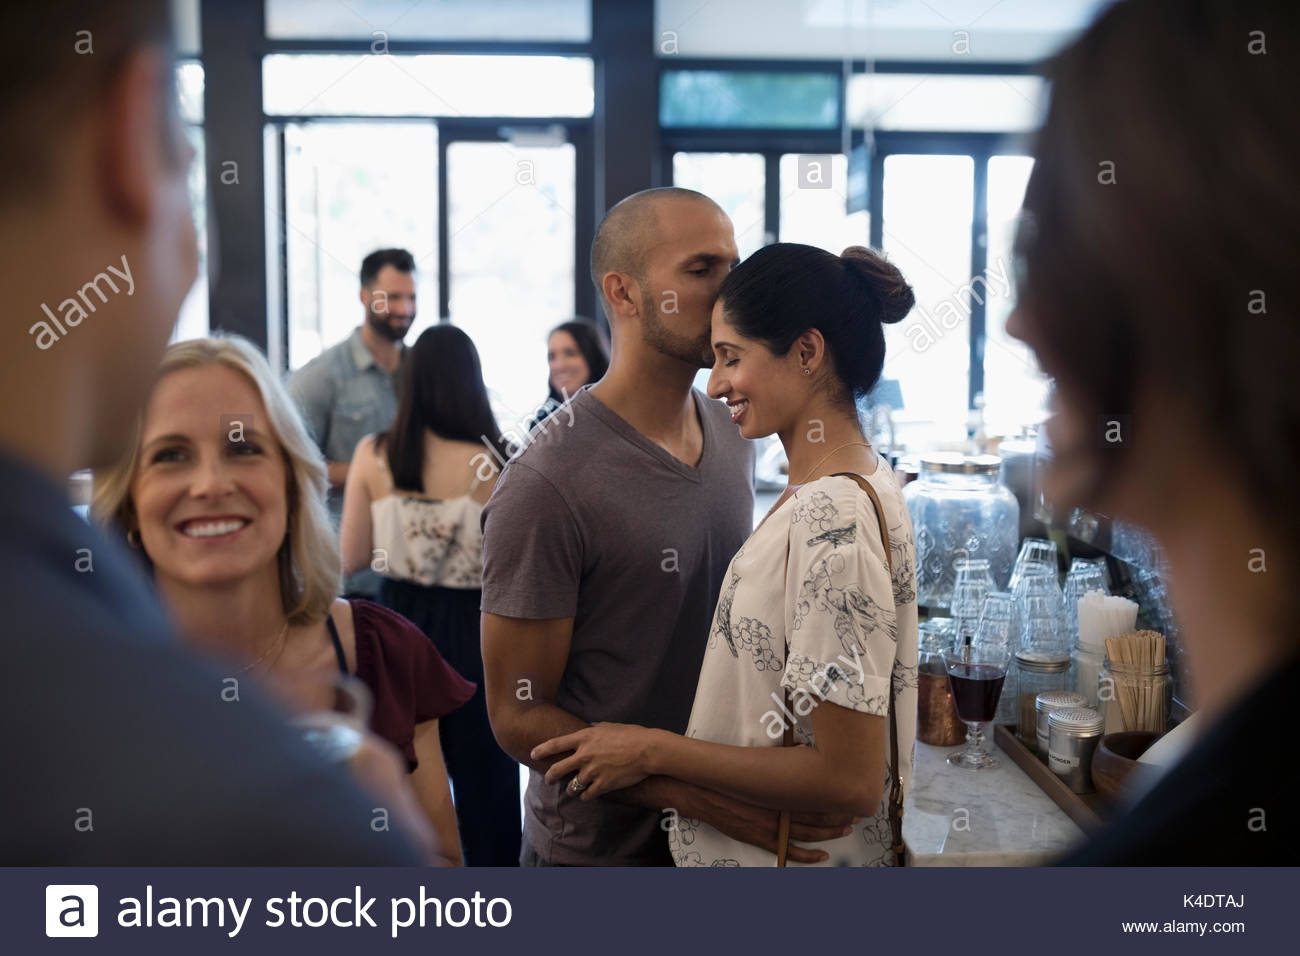 Affectionate couple kissing in bar - Stock Image